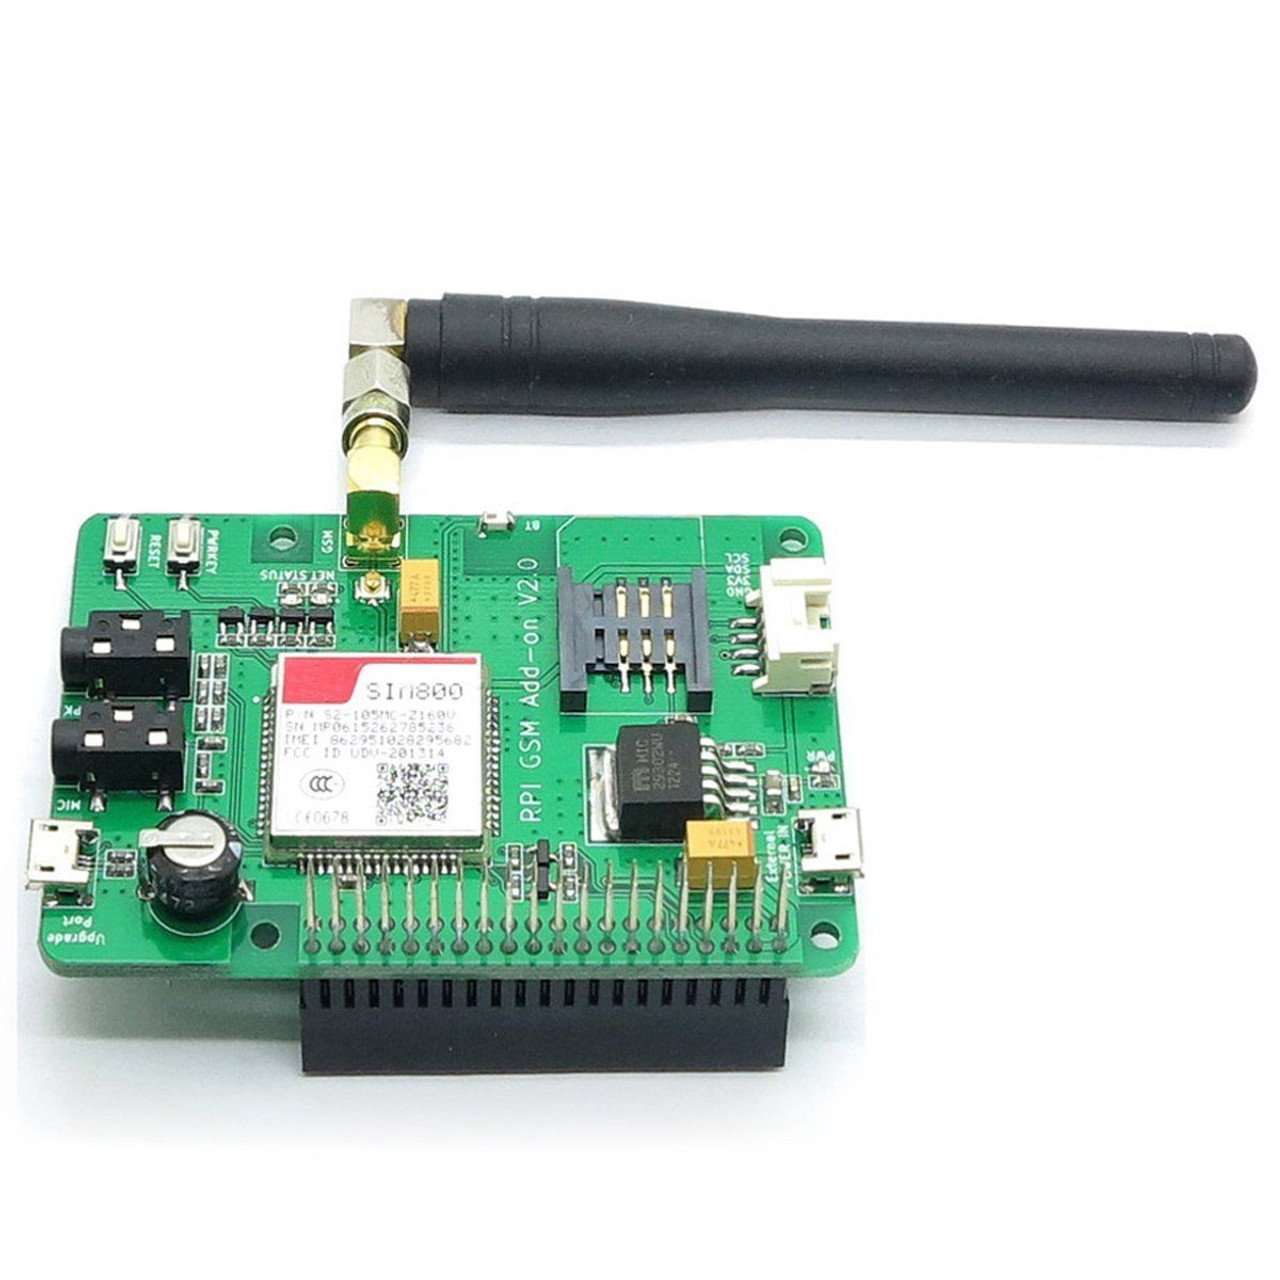 Sim800 Board with GSM/GPRS, SMS for Raspberry Pi